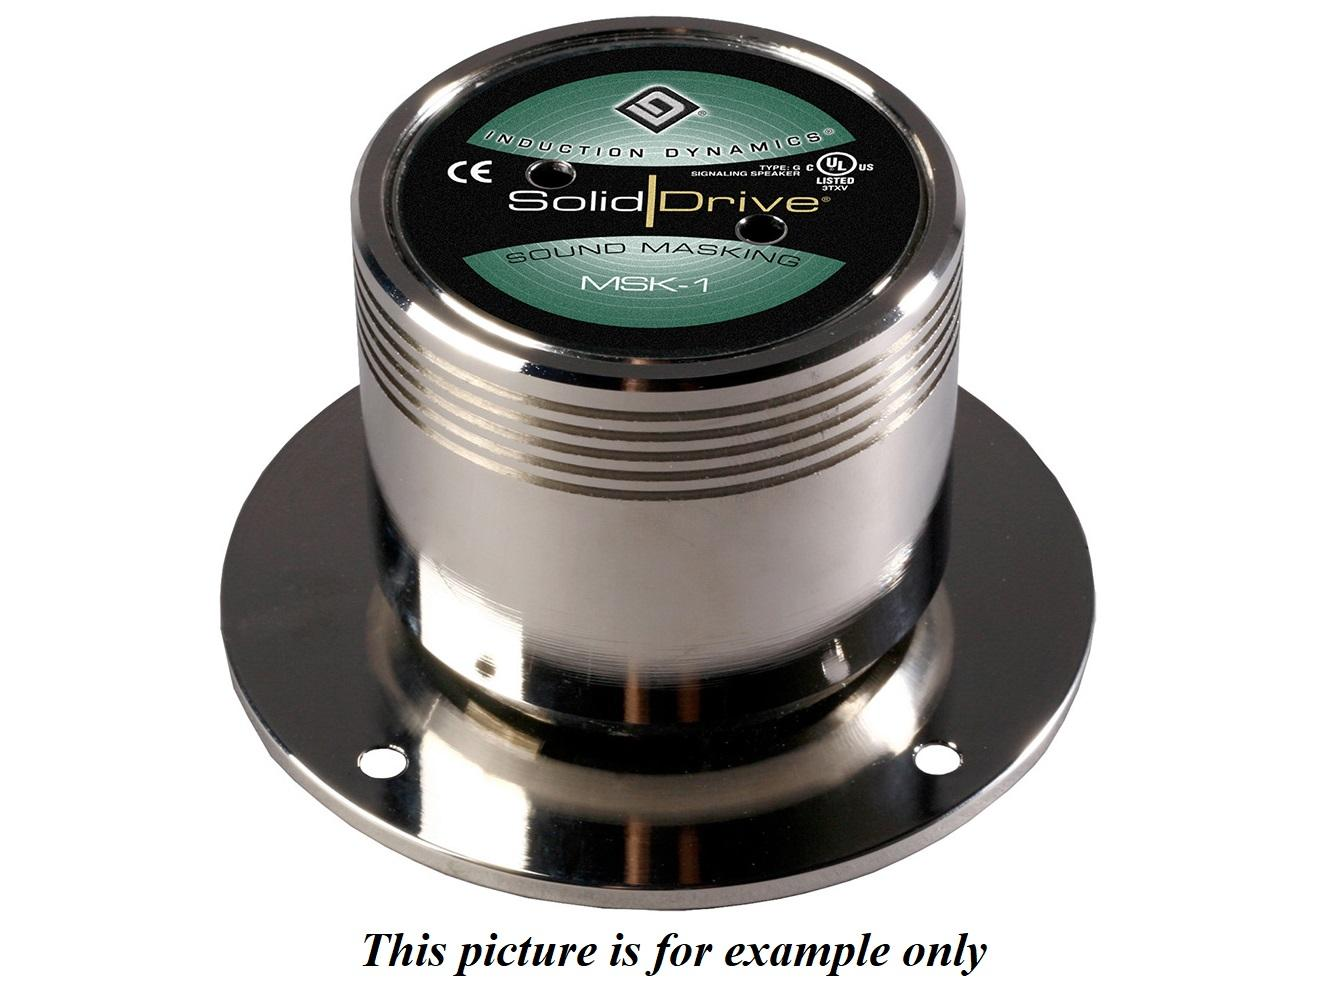 Soliddrive MSK-1G-T Sound Masking Glass 70V